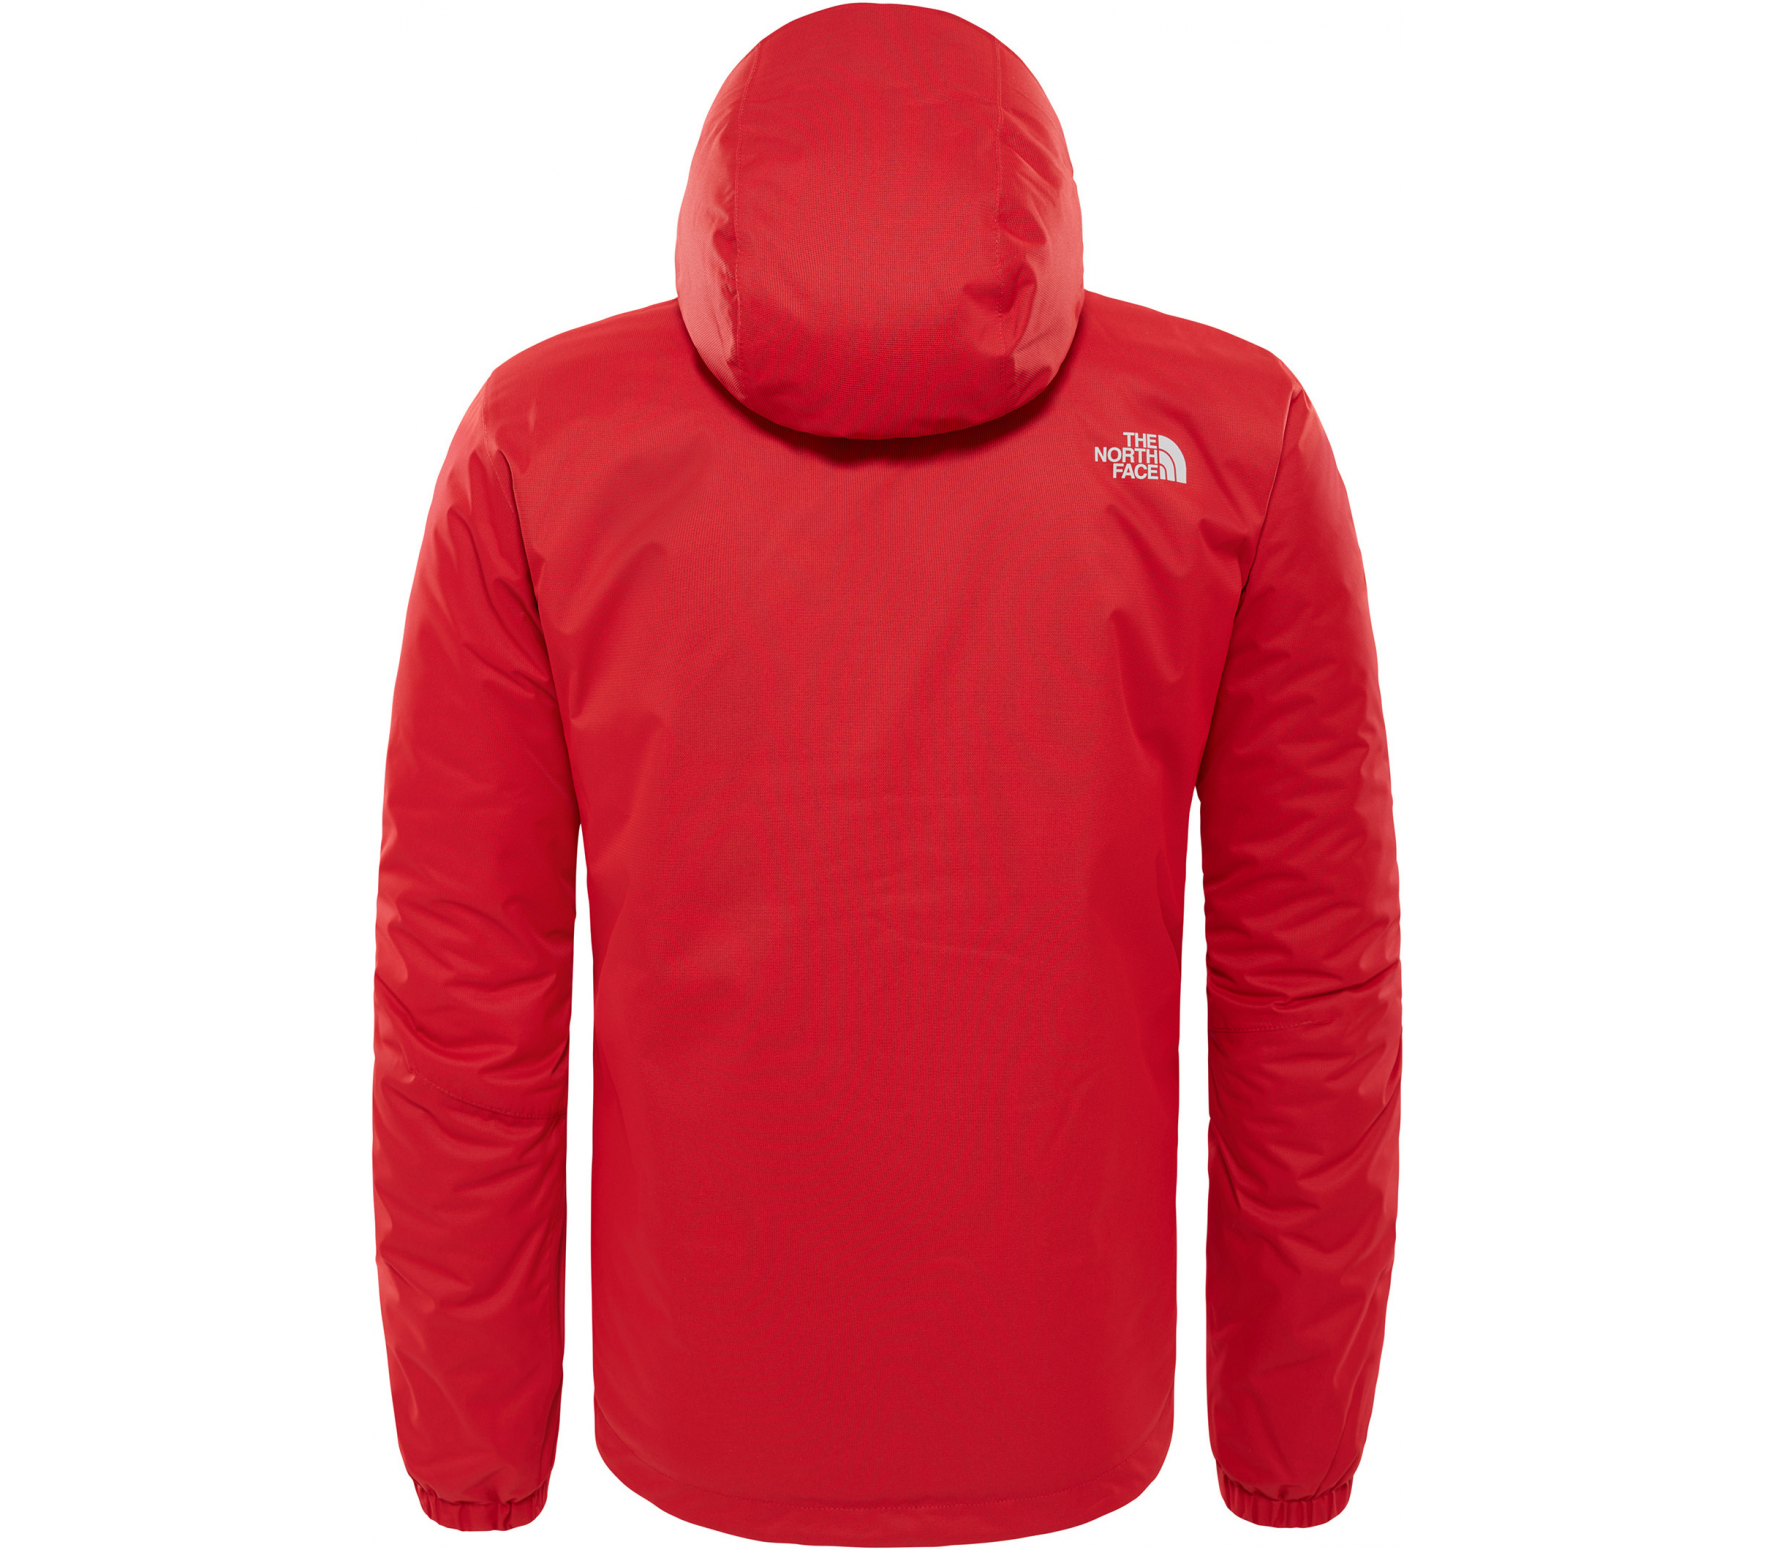 Quest North Insulated Hombre The chaquetarojo Face tdhQxsrC